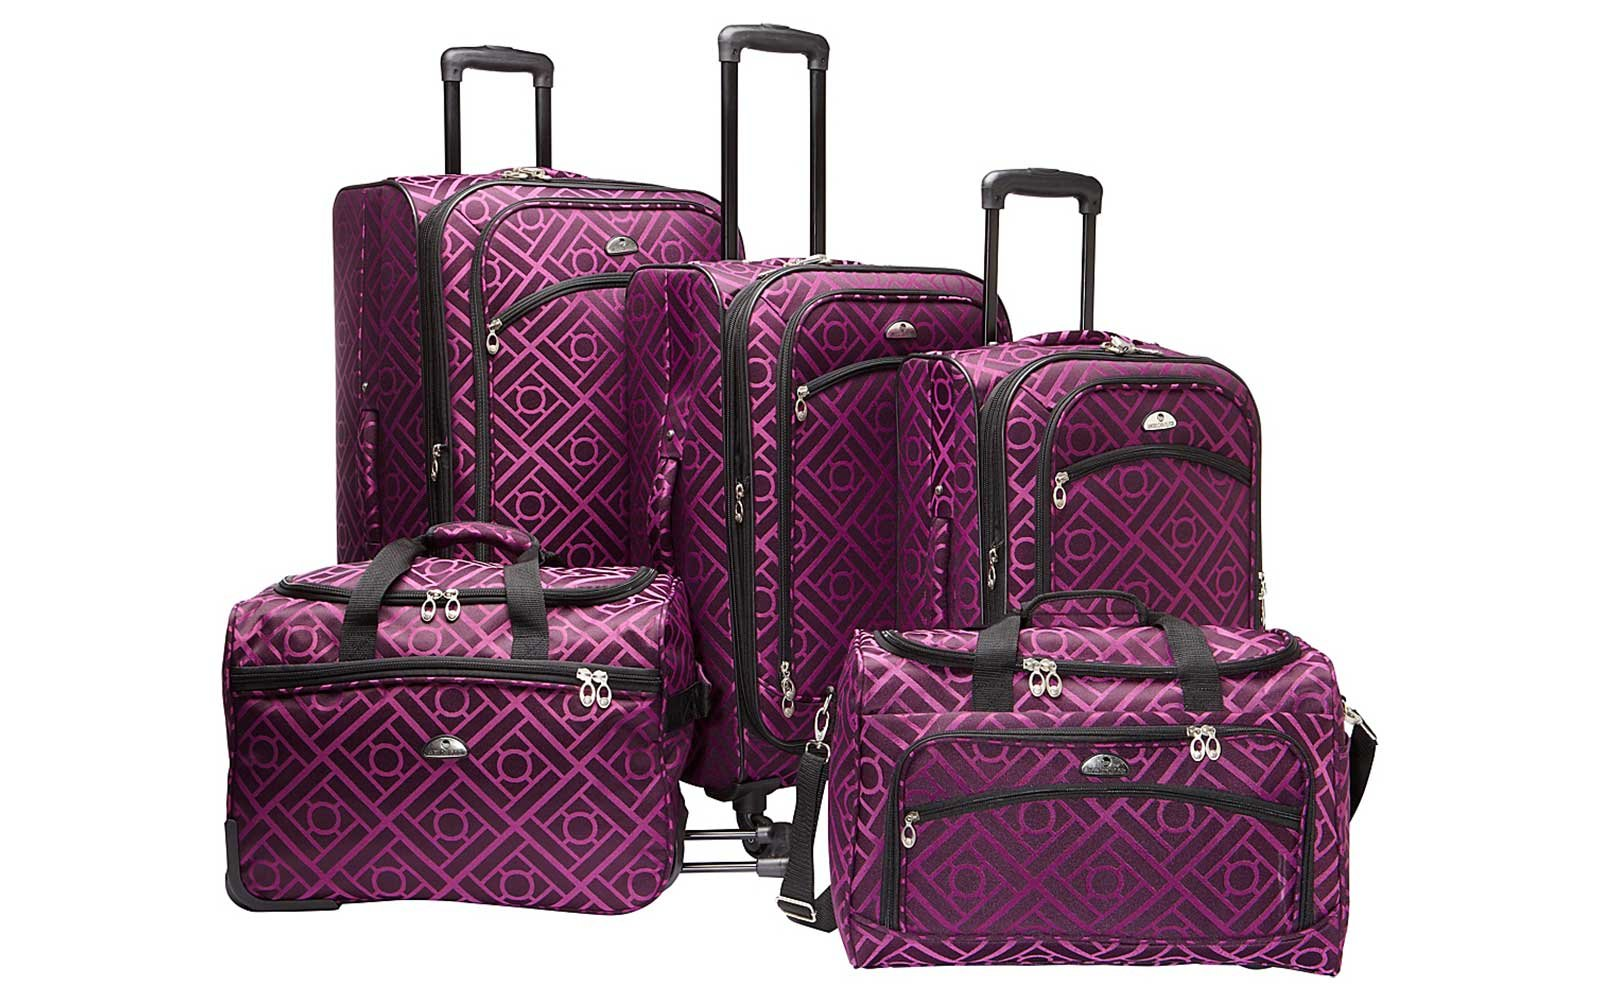 American Flyer magenta printed 5-piece luggage set